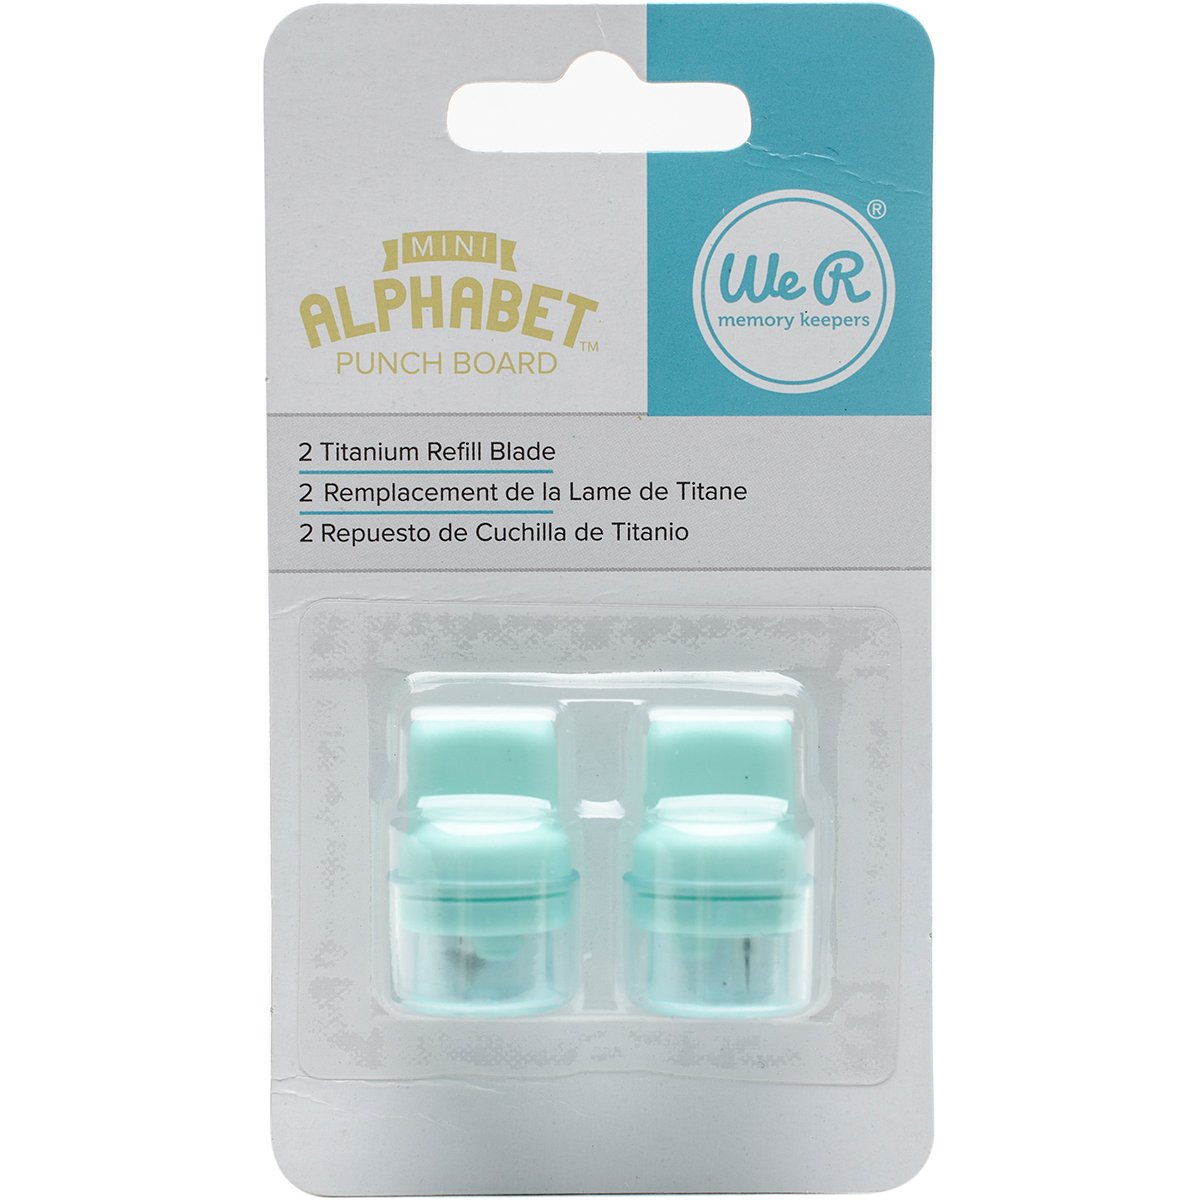 American Crafts 663005 We R Memory Keepers Tools 2Piece Mini Alphabet Punch Blade Refill